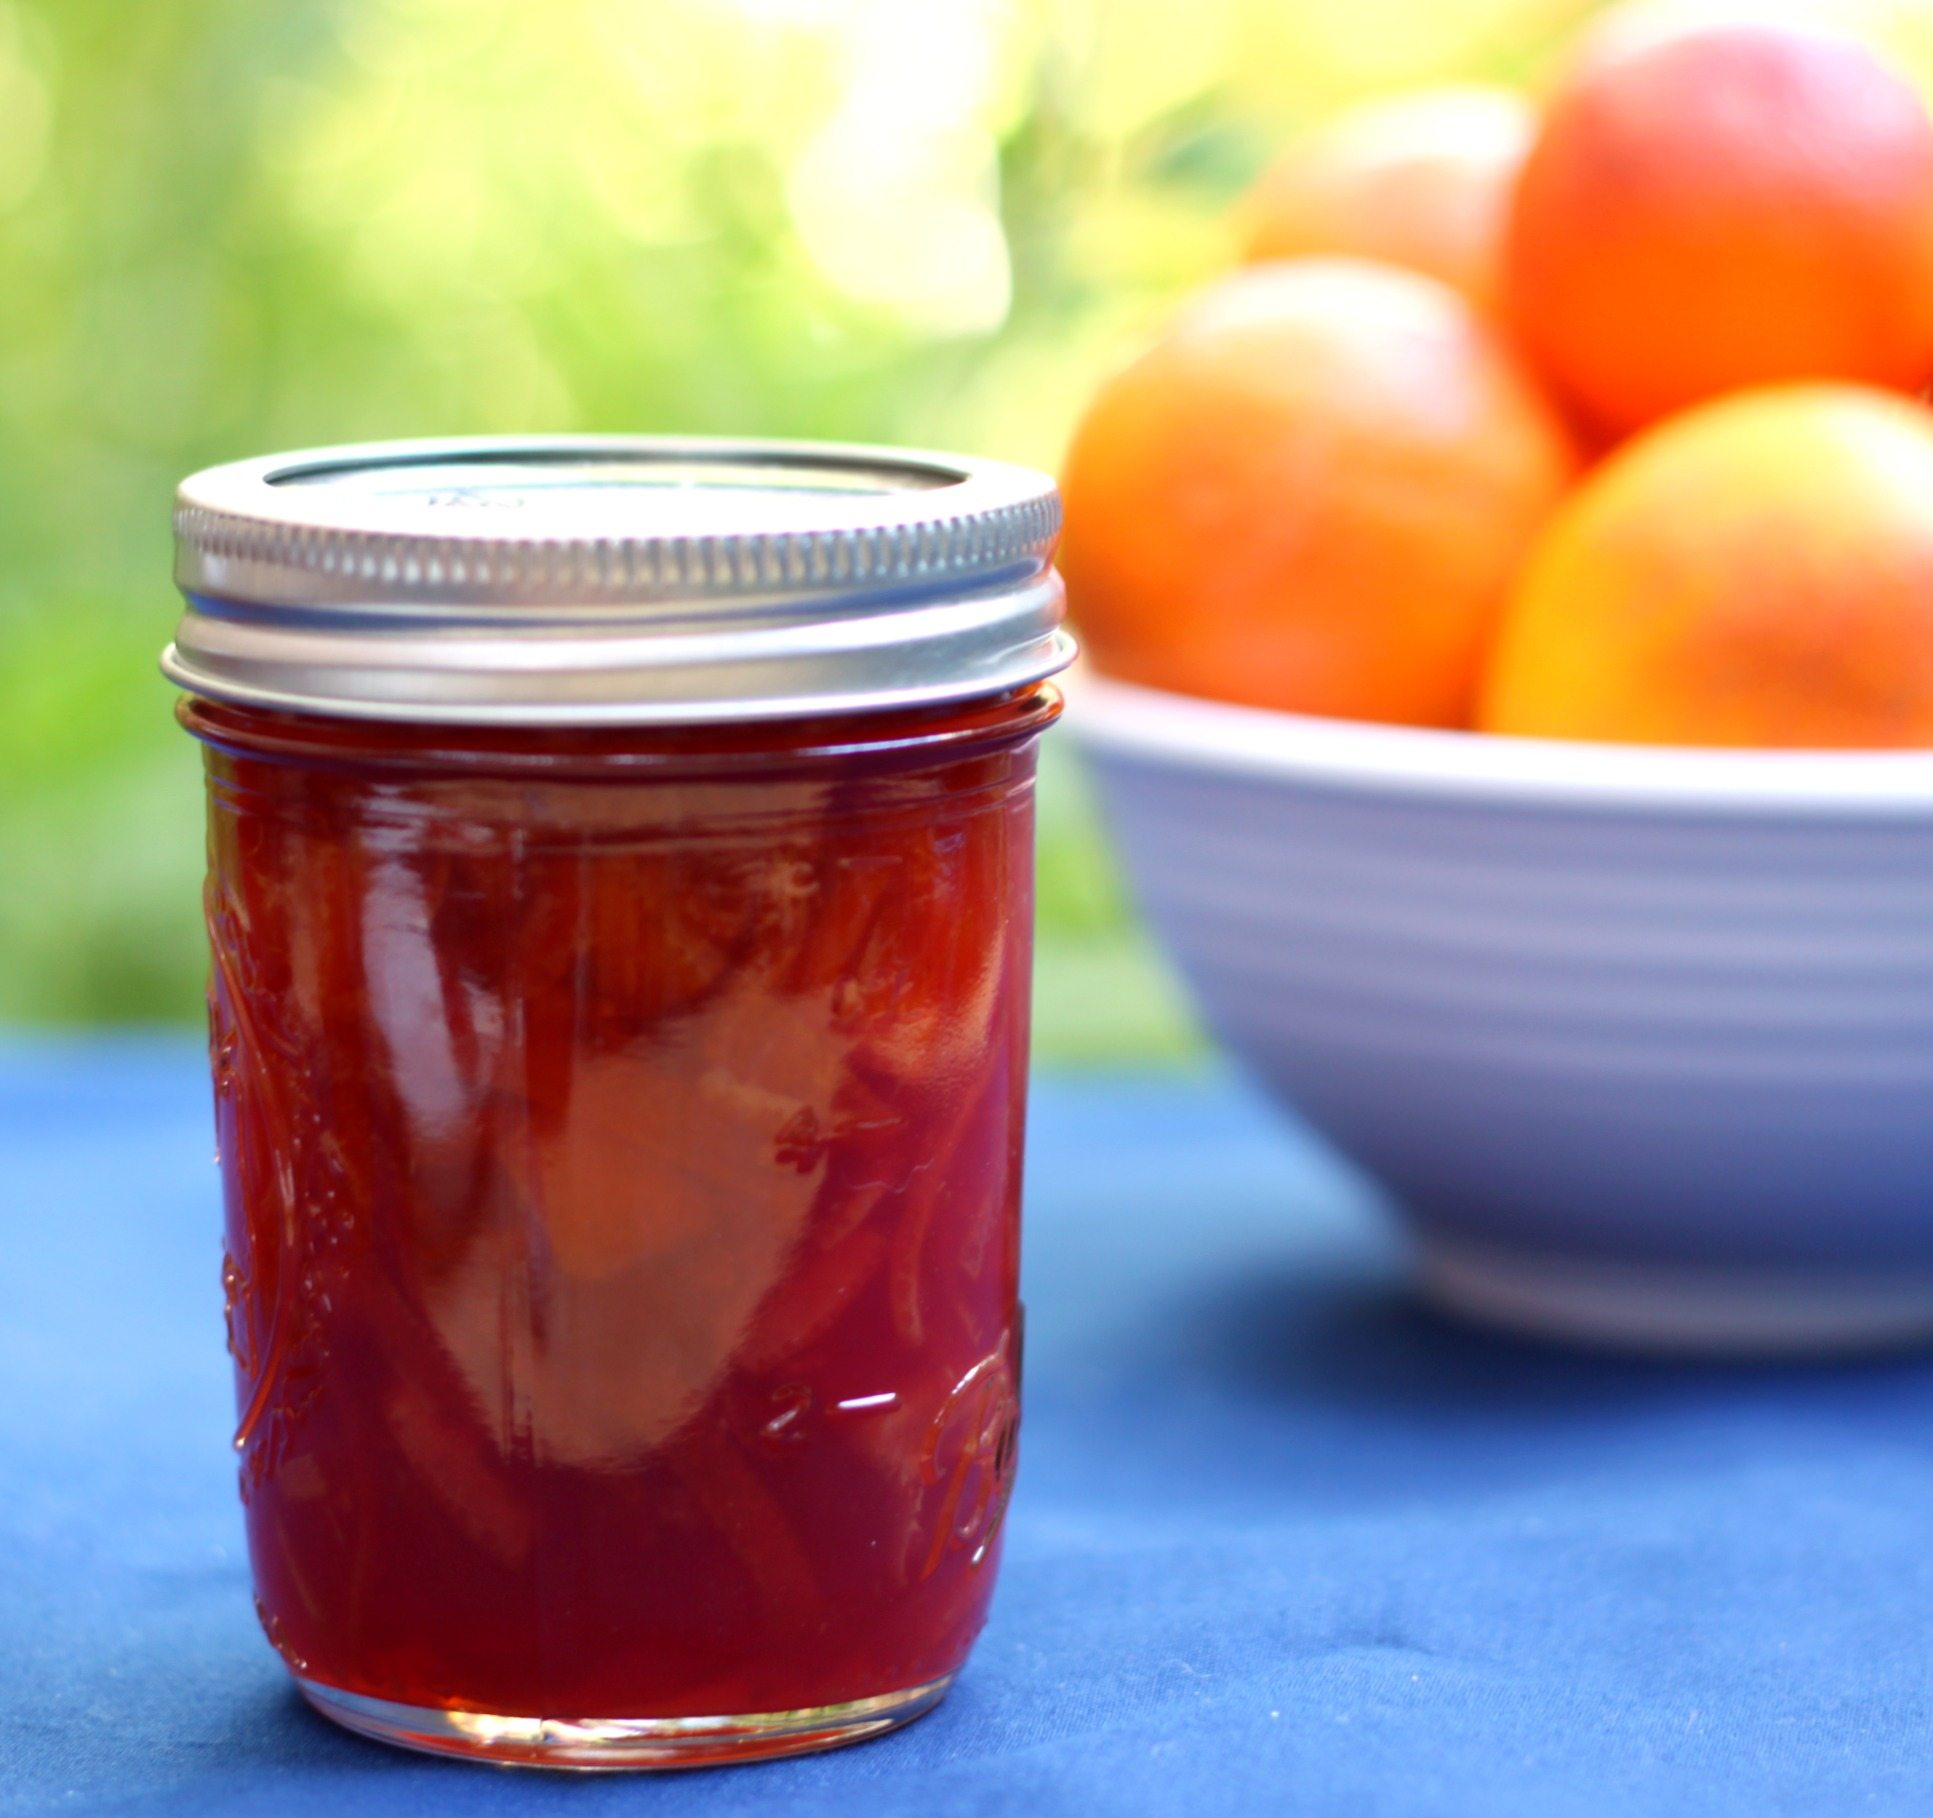 Homemade Blood Orange Marmalade